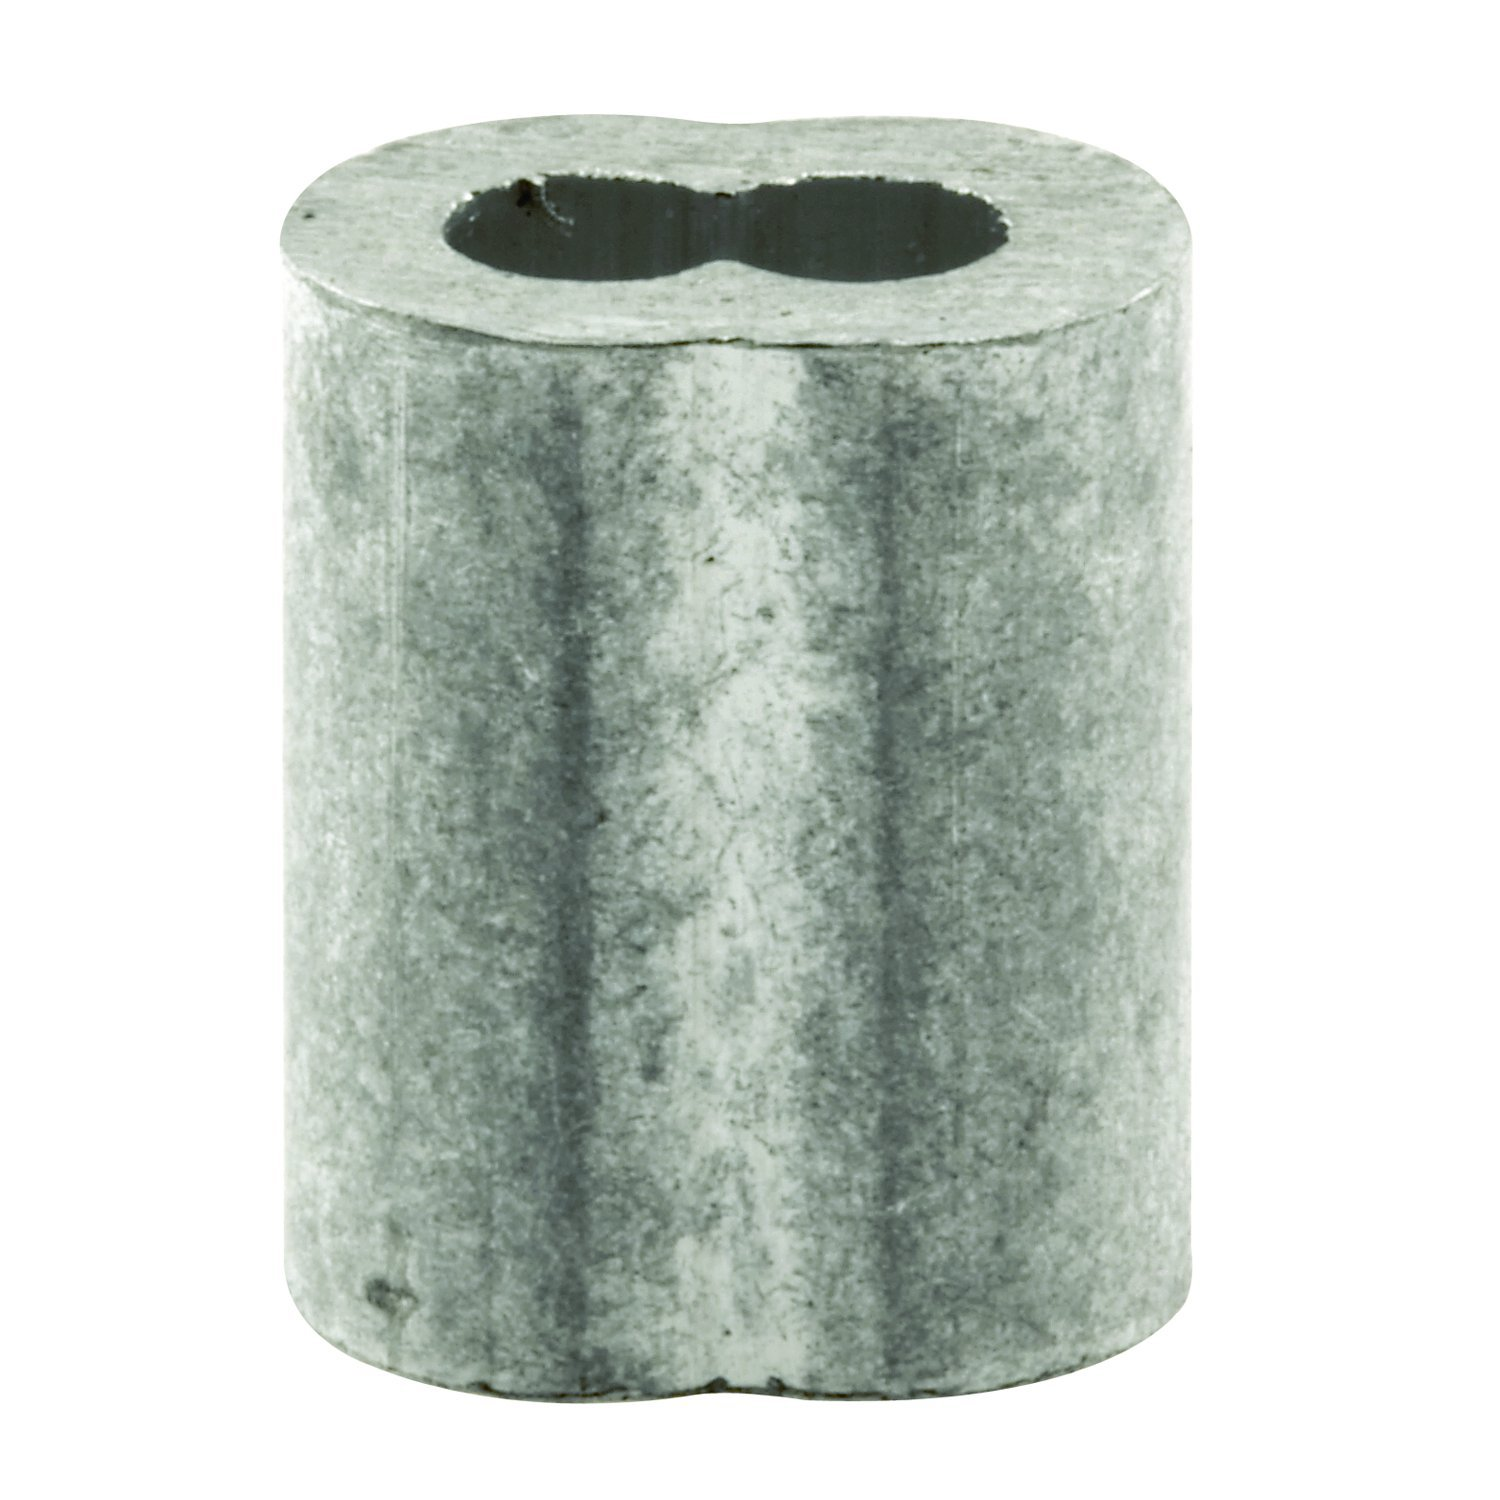 Prime-Line Products GD 12174 Cable Ferrules, 1/8'', Extruded Aluminum, Pack of 100